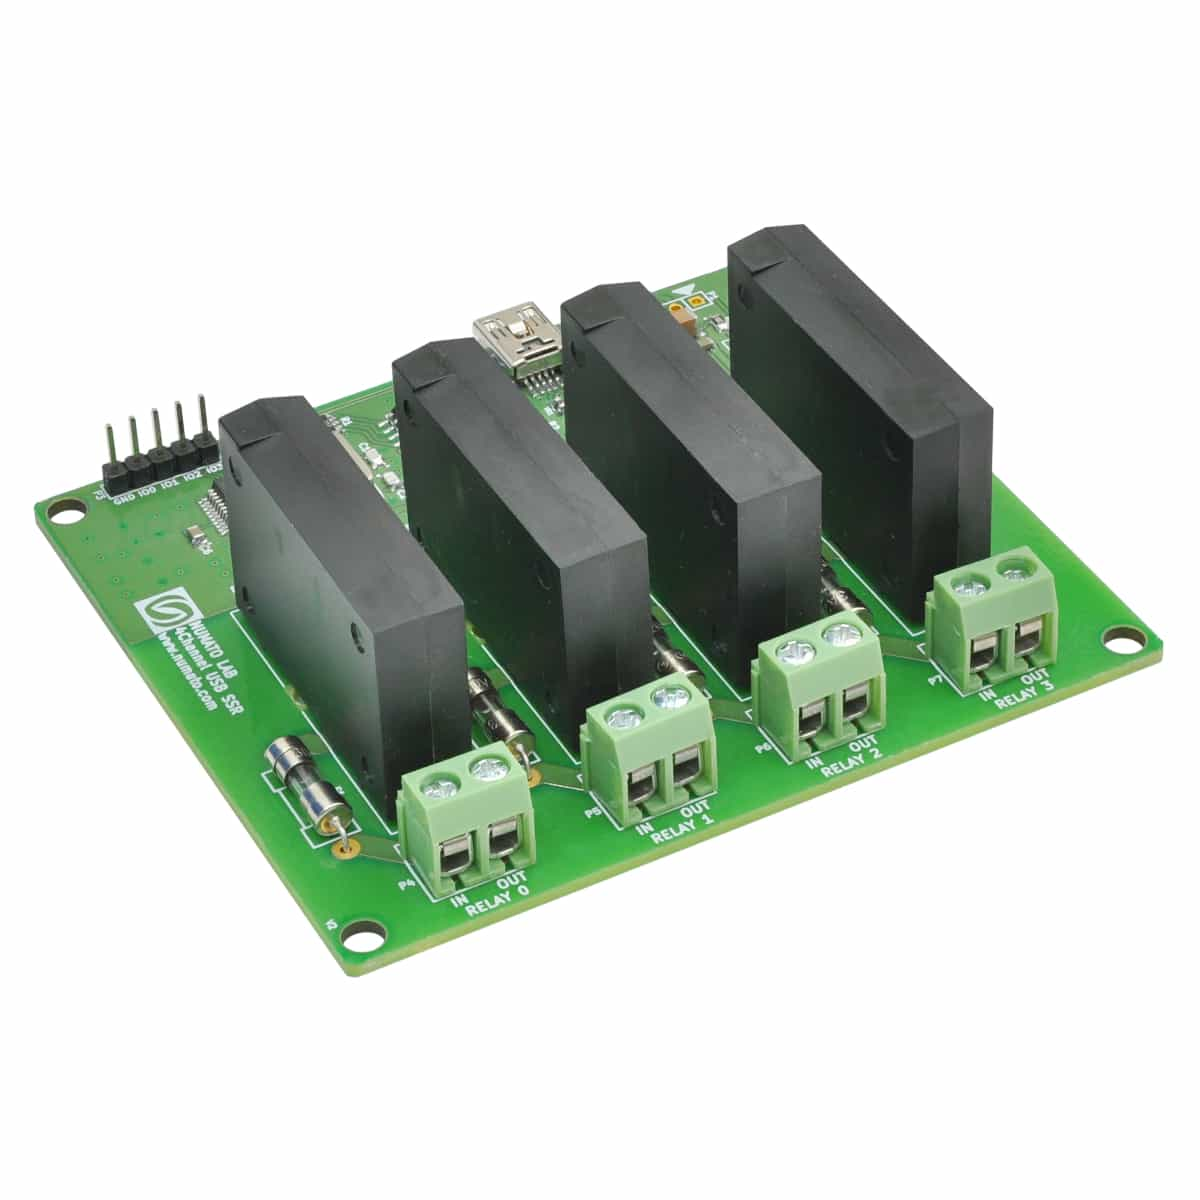 4 channel usb solid state relay module with gpio numato lab rh numato com Solid State Relay Schematic Solid State Relay Schematic